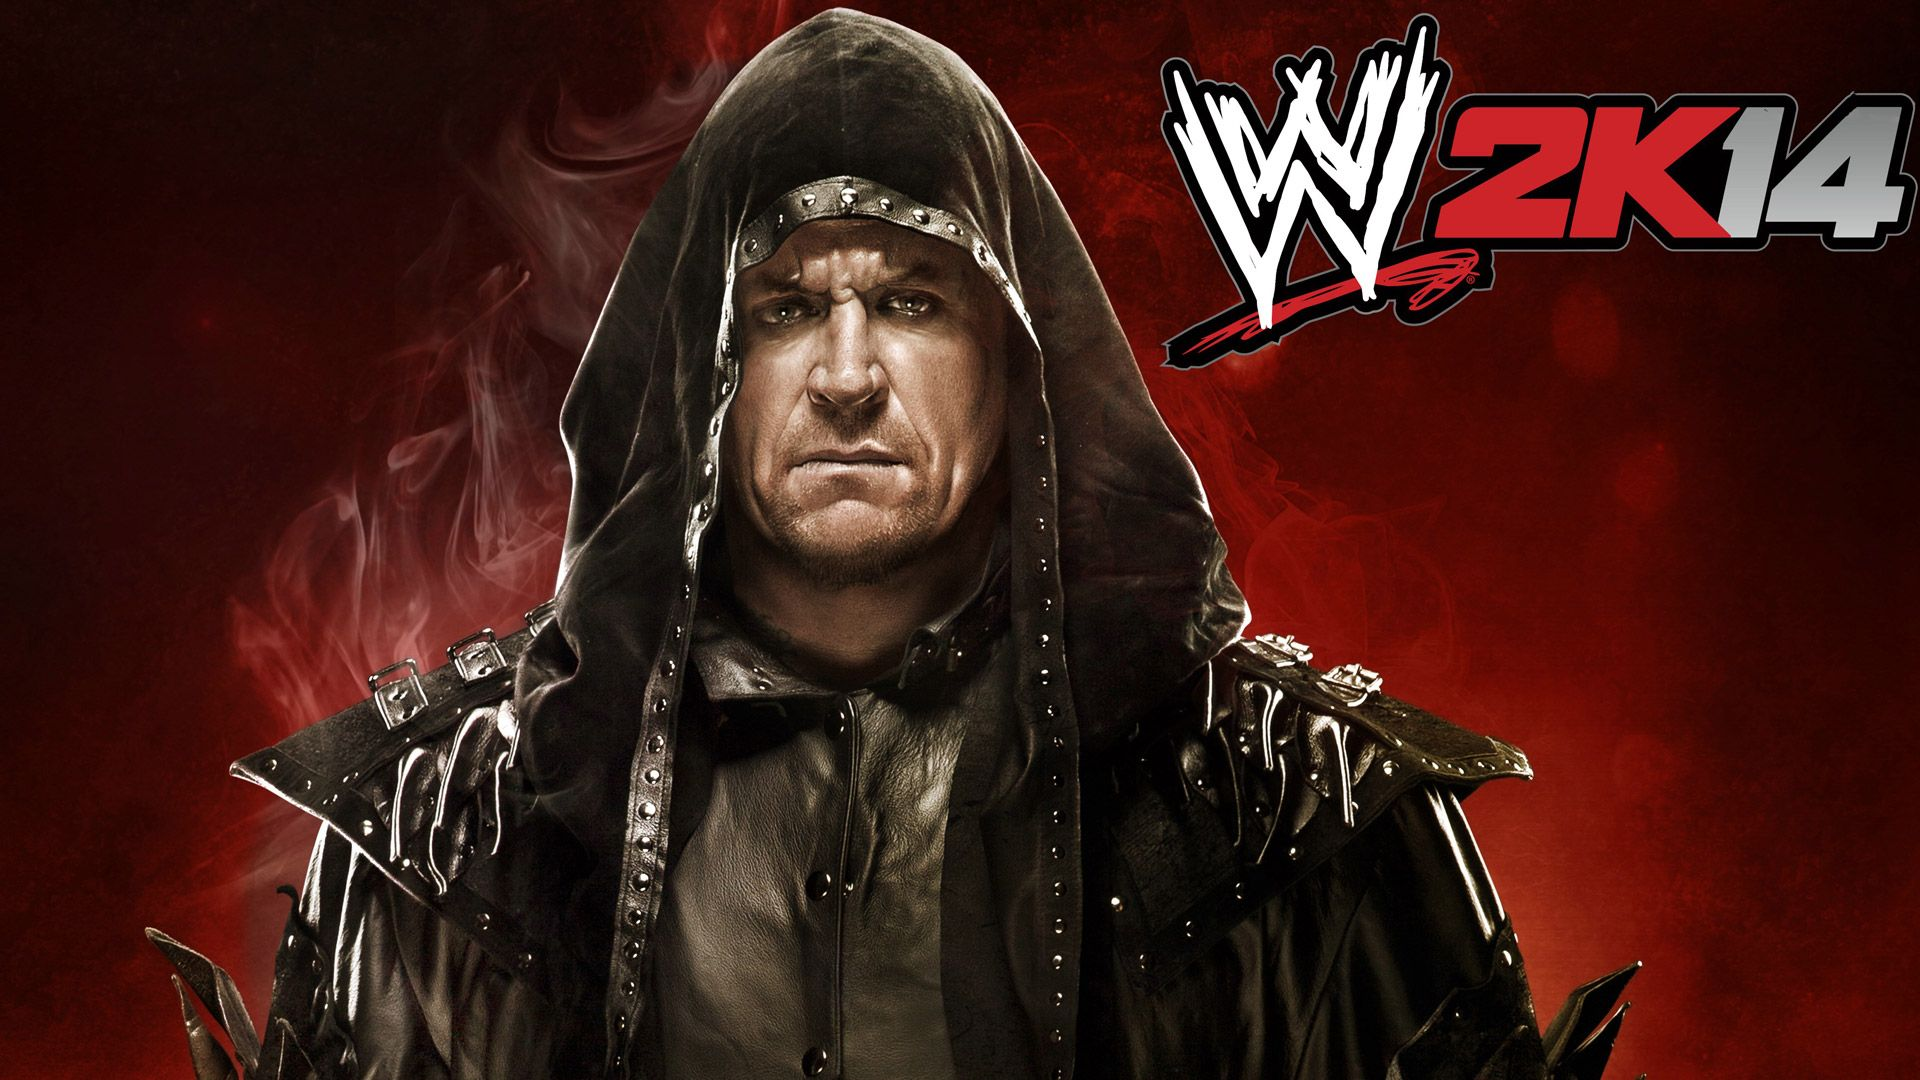 wwe wallpaper http://wallpapers-and-backgrounds/wwe-wallpaper